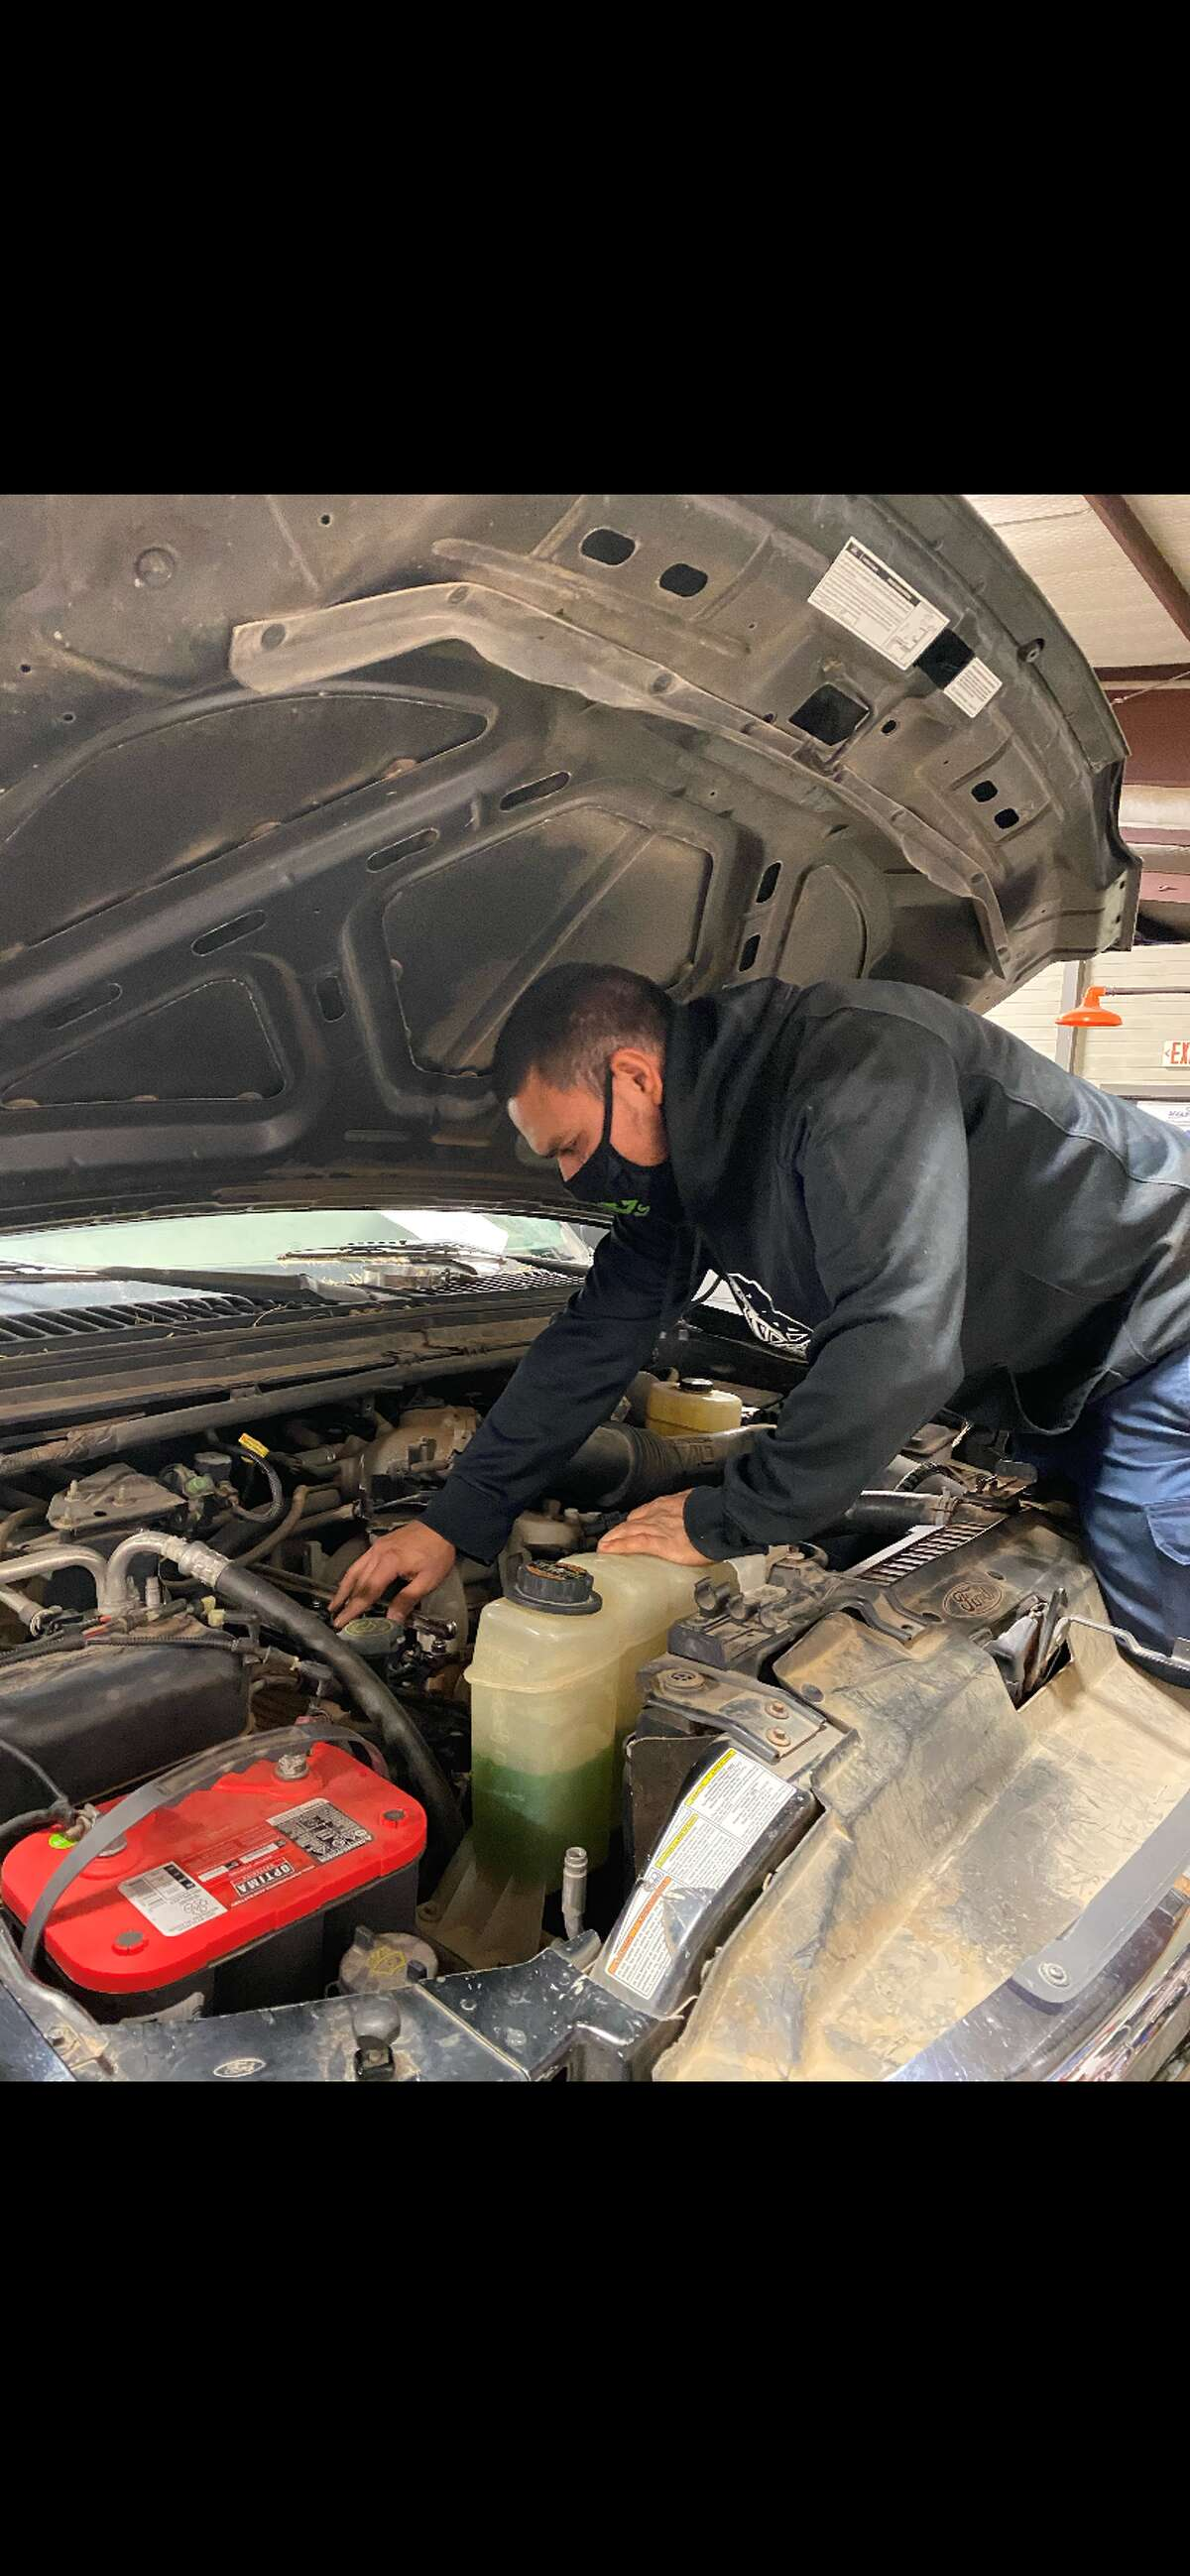 Jimmy Espinoza is just one of many MC students who are pursuing certificates and degrees in Applied Technology programs, ranging from Welding, Auto Technology, Energy Technology and various hands-on programs in the Information Technology field.